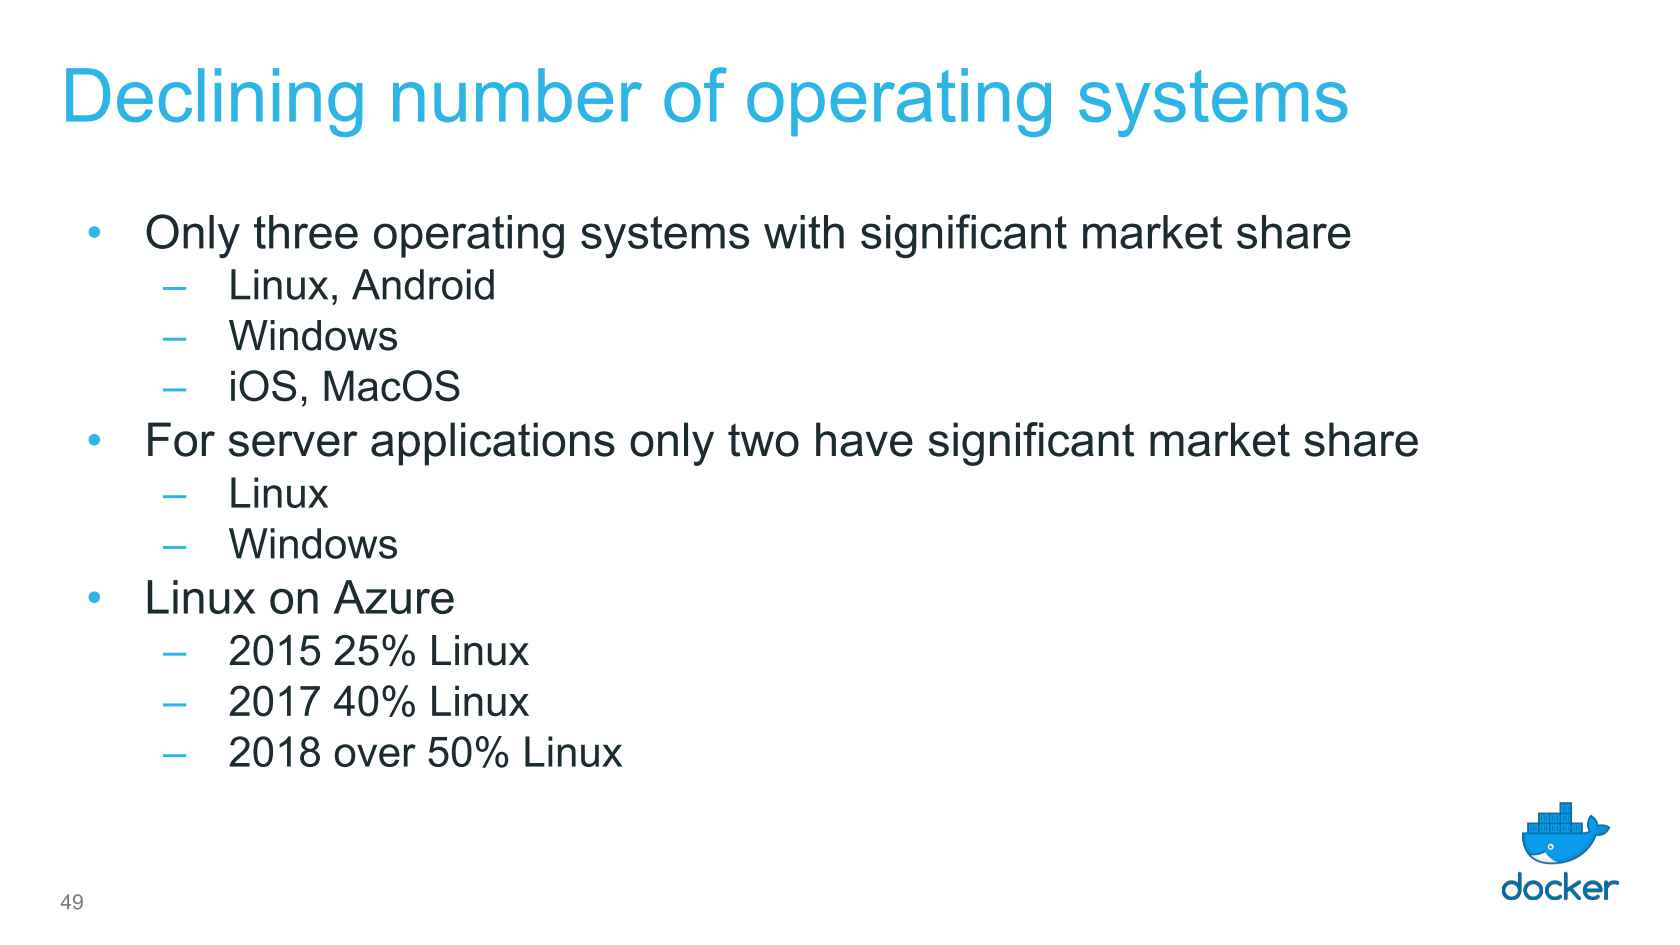 The Operating System in 2018